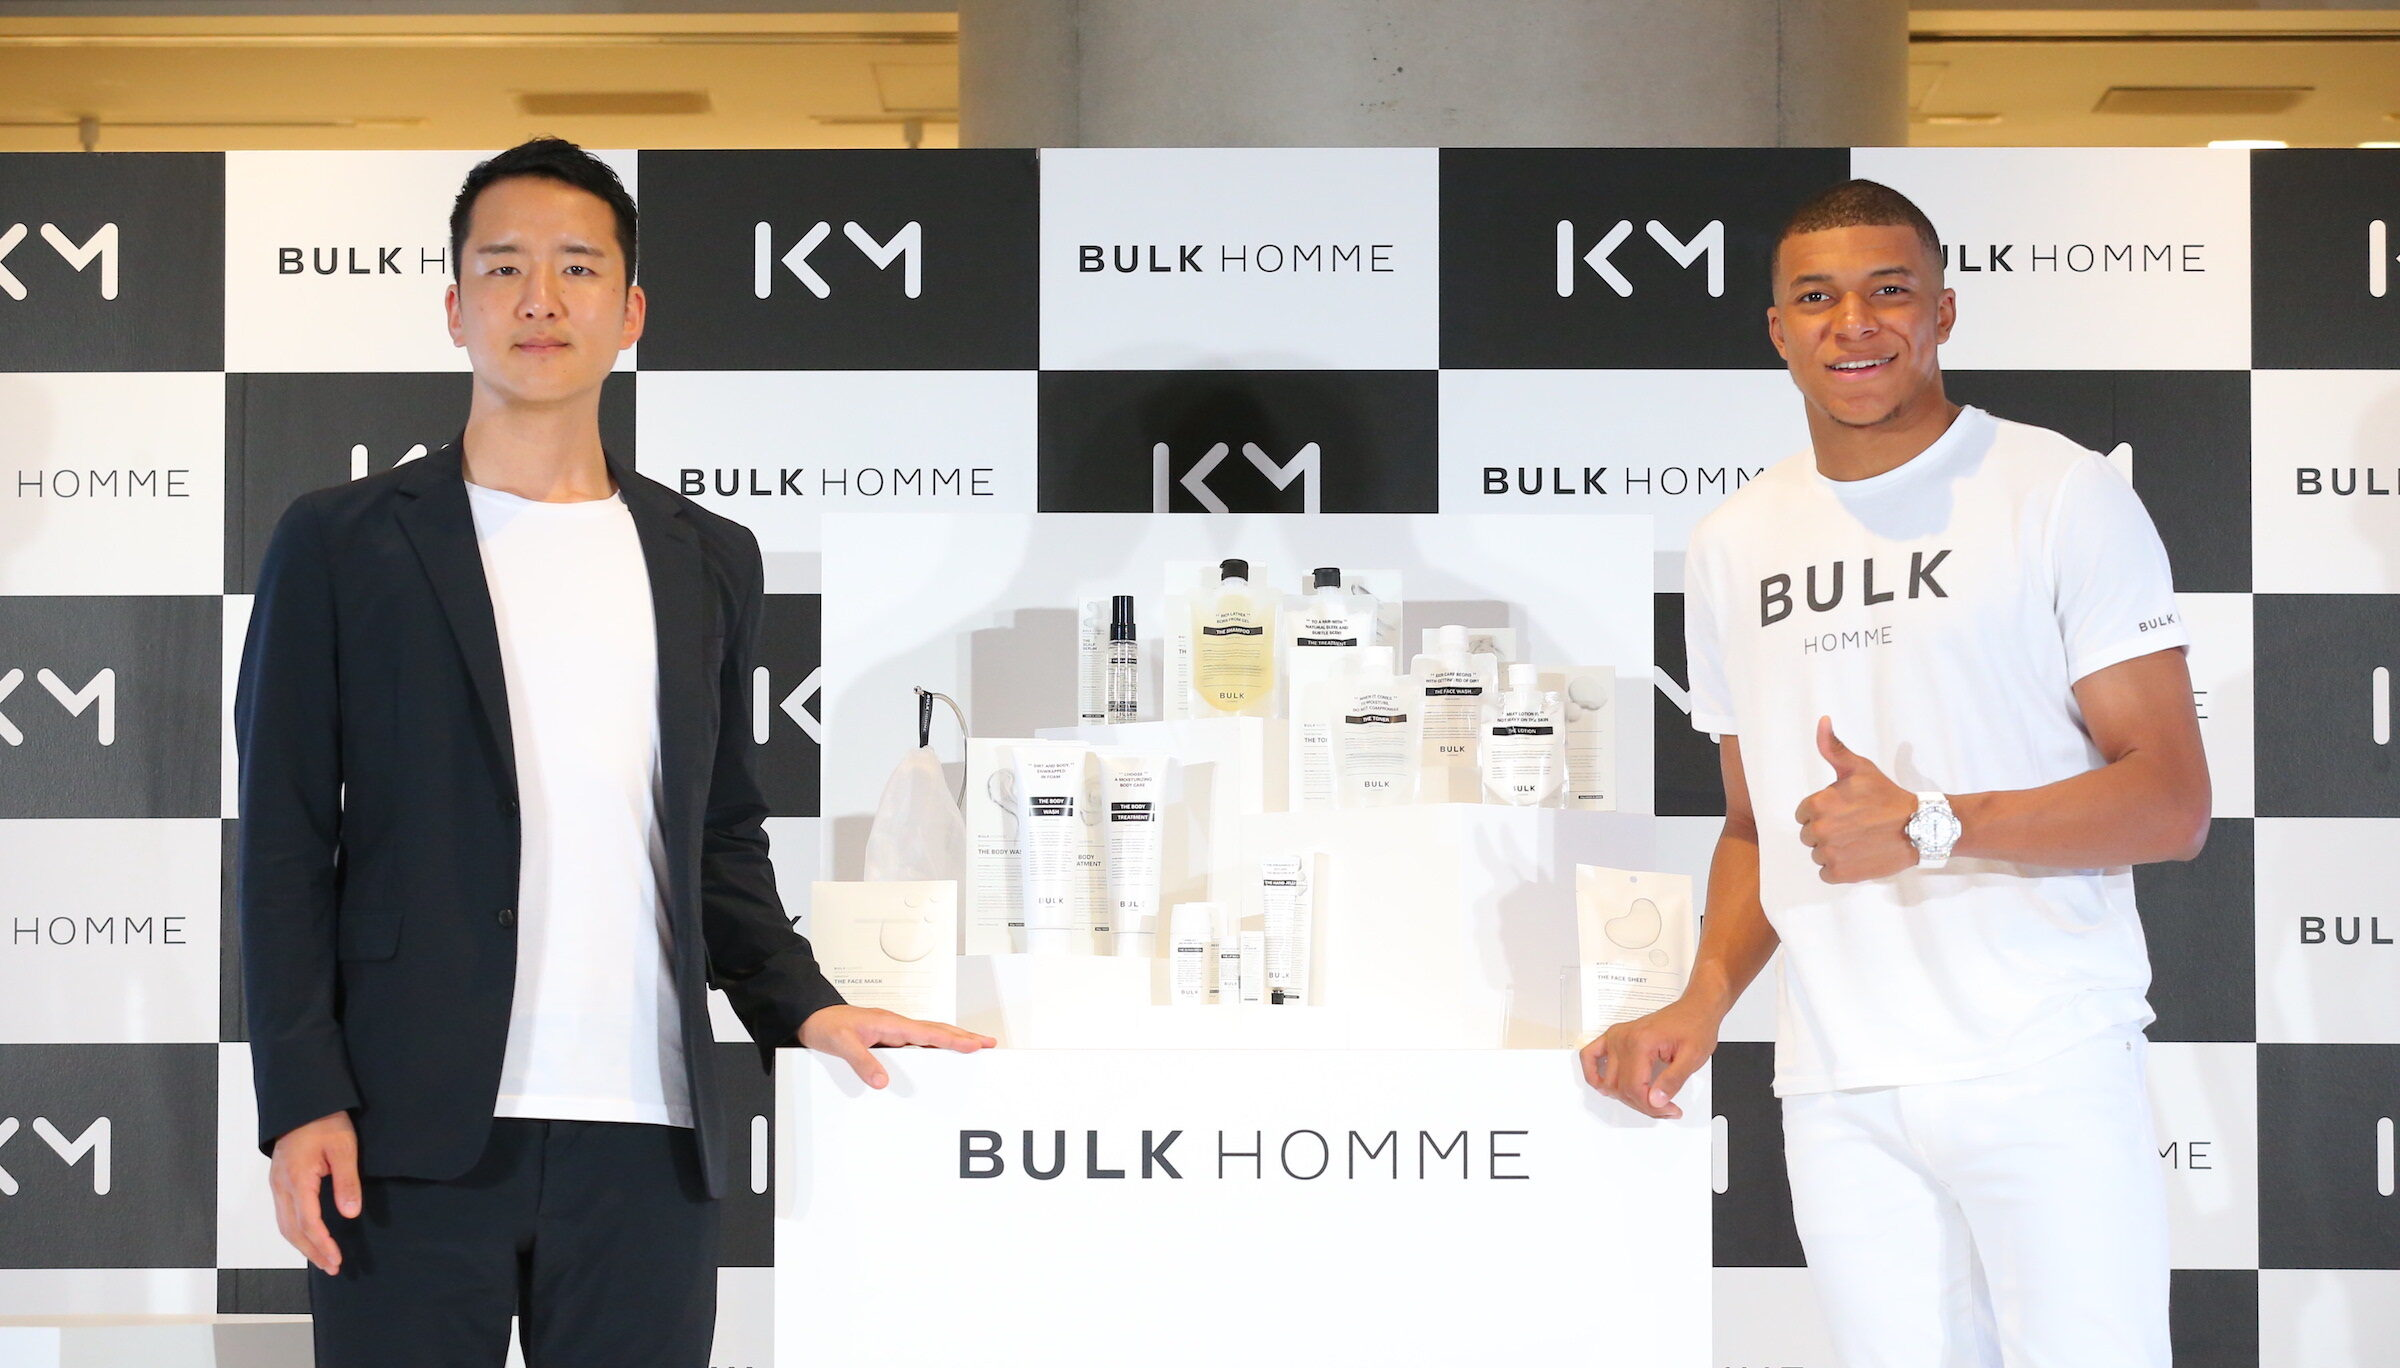 BULK HOMME Launches in Europe: Football Superstar and BULK HOMME Global Ambassador Kylian Mbappé Praises The Japanese Skincare Brand's Big Ambitions